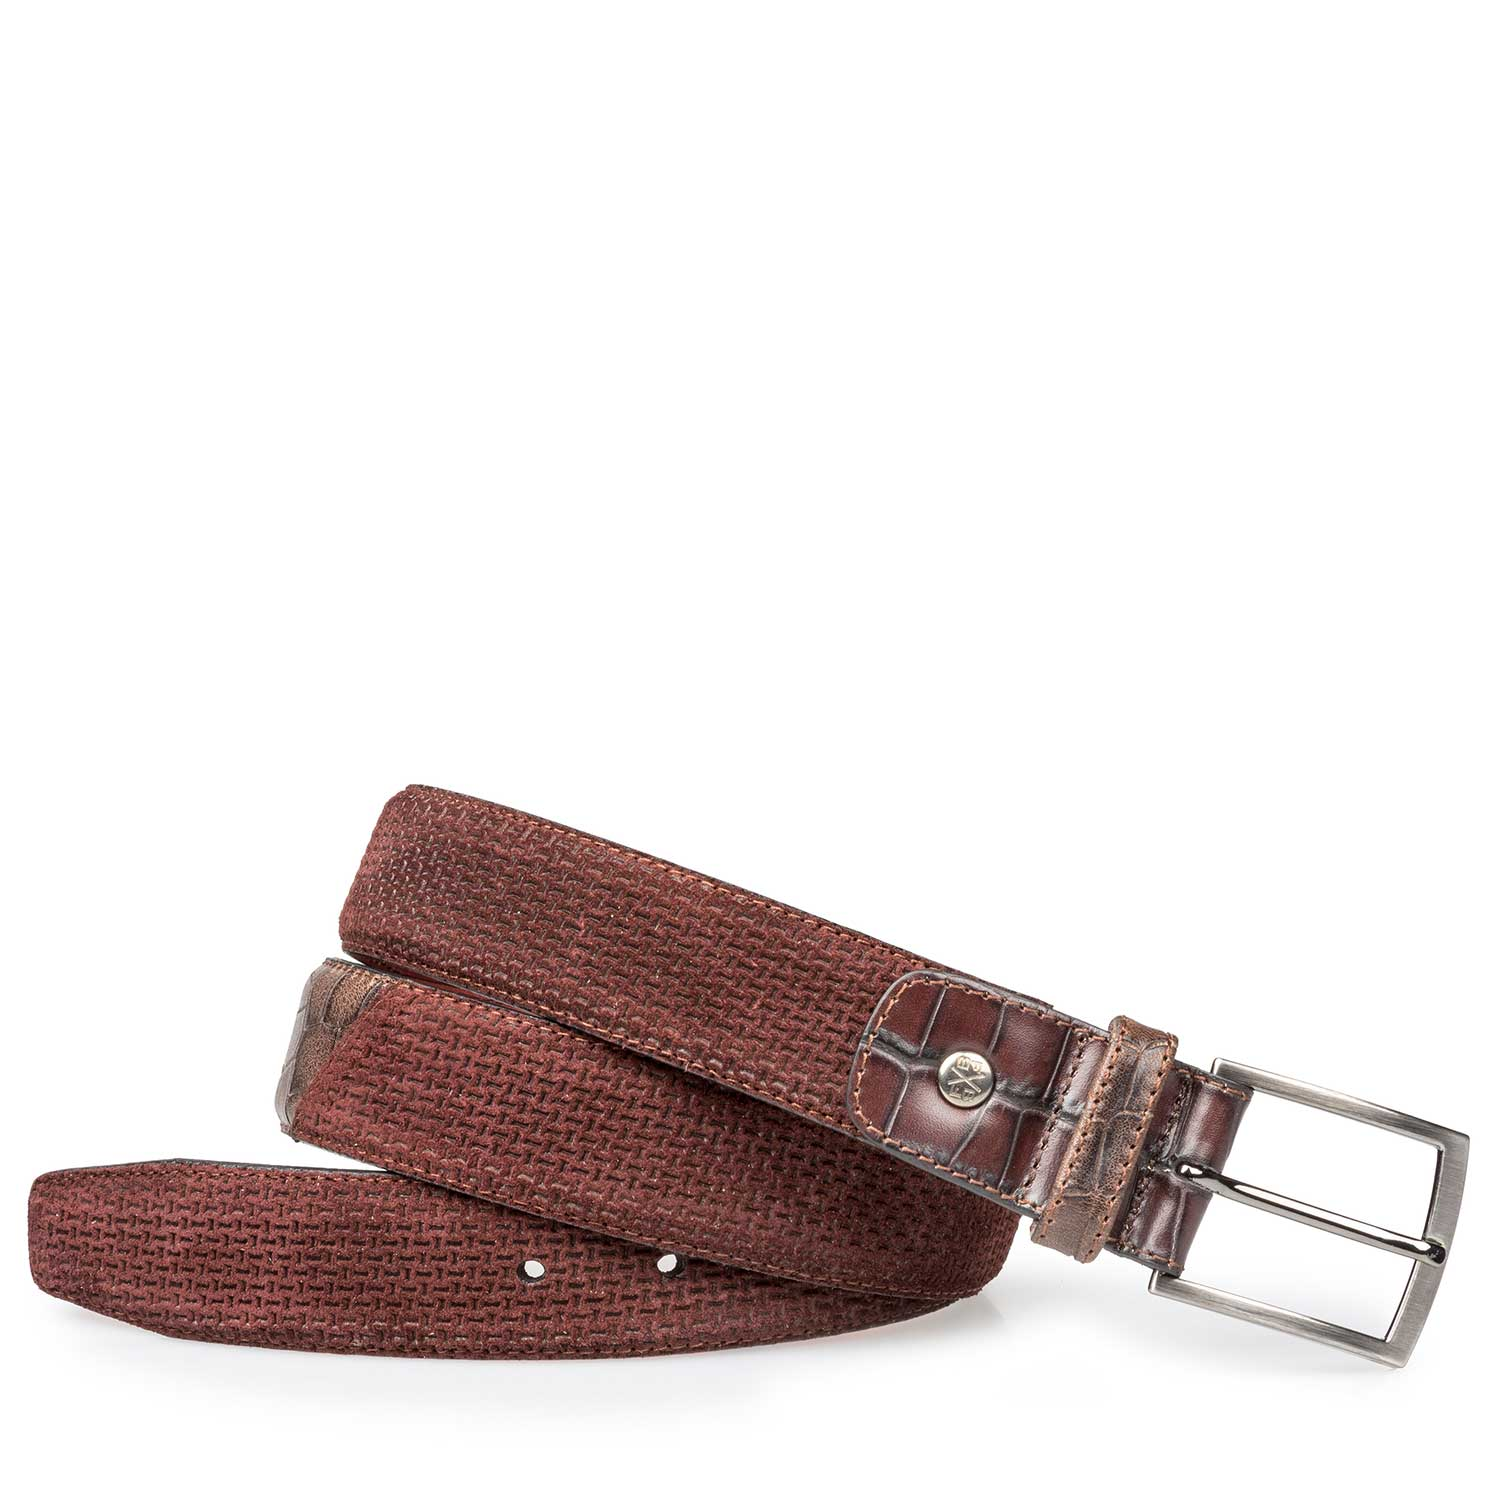 75188/04 - Burgundy red suede leather belt